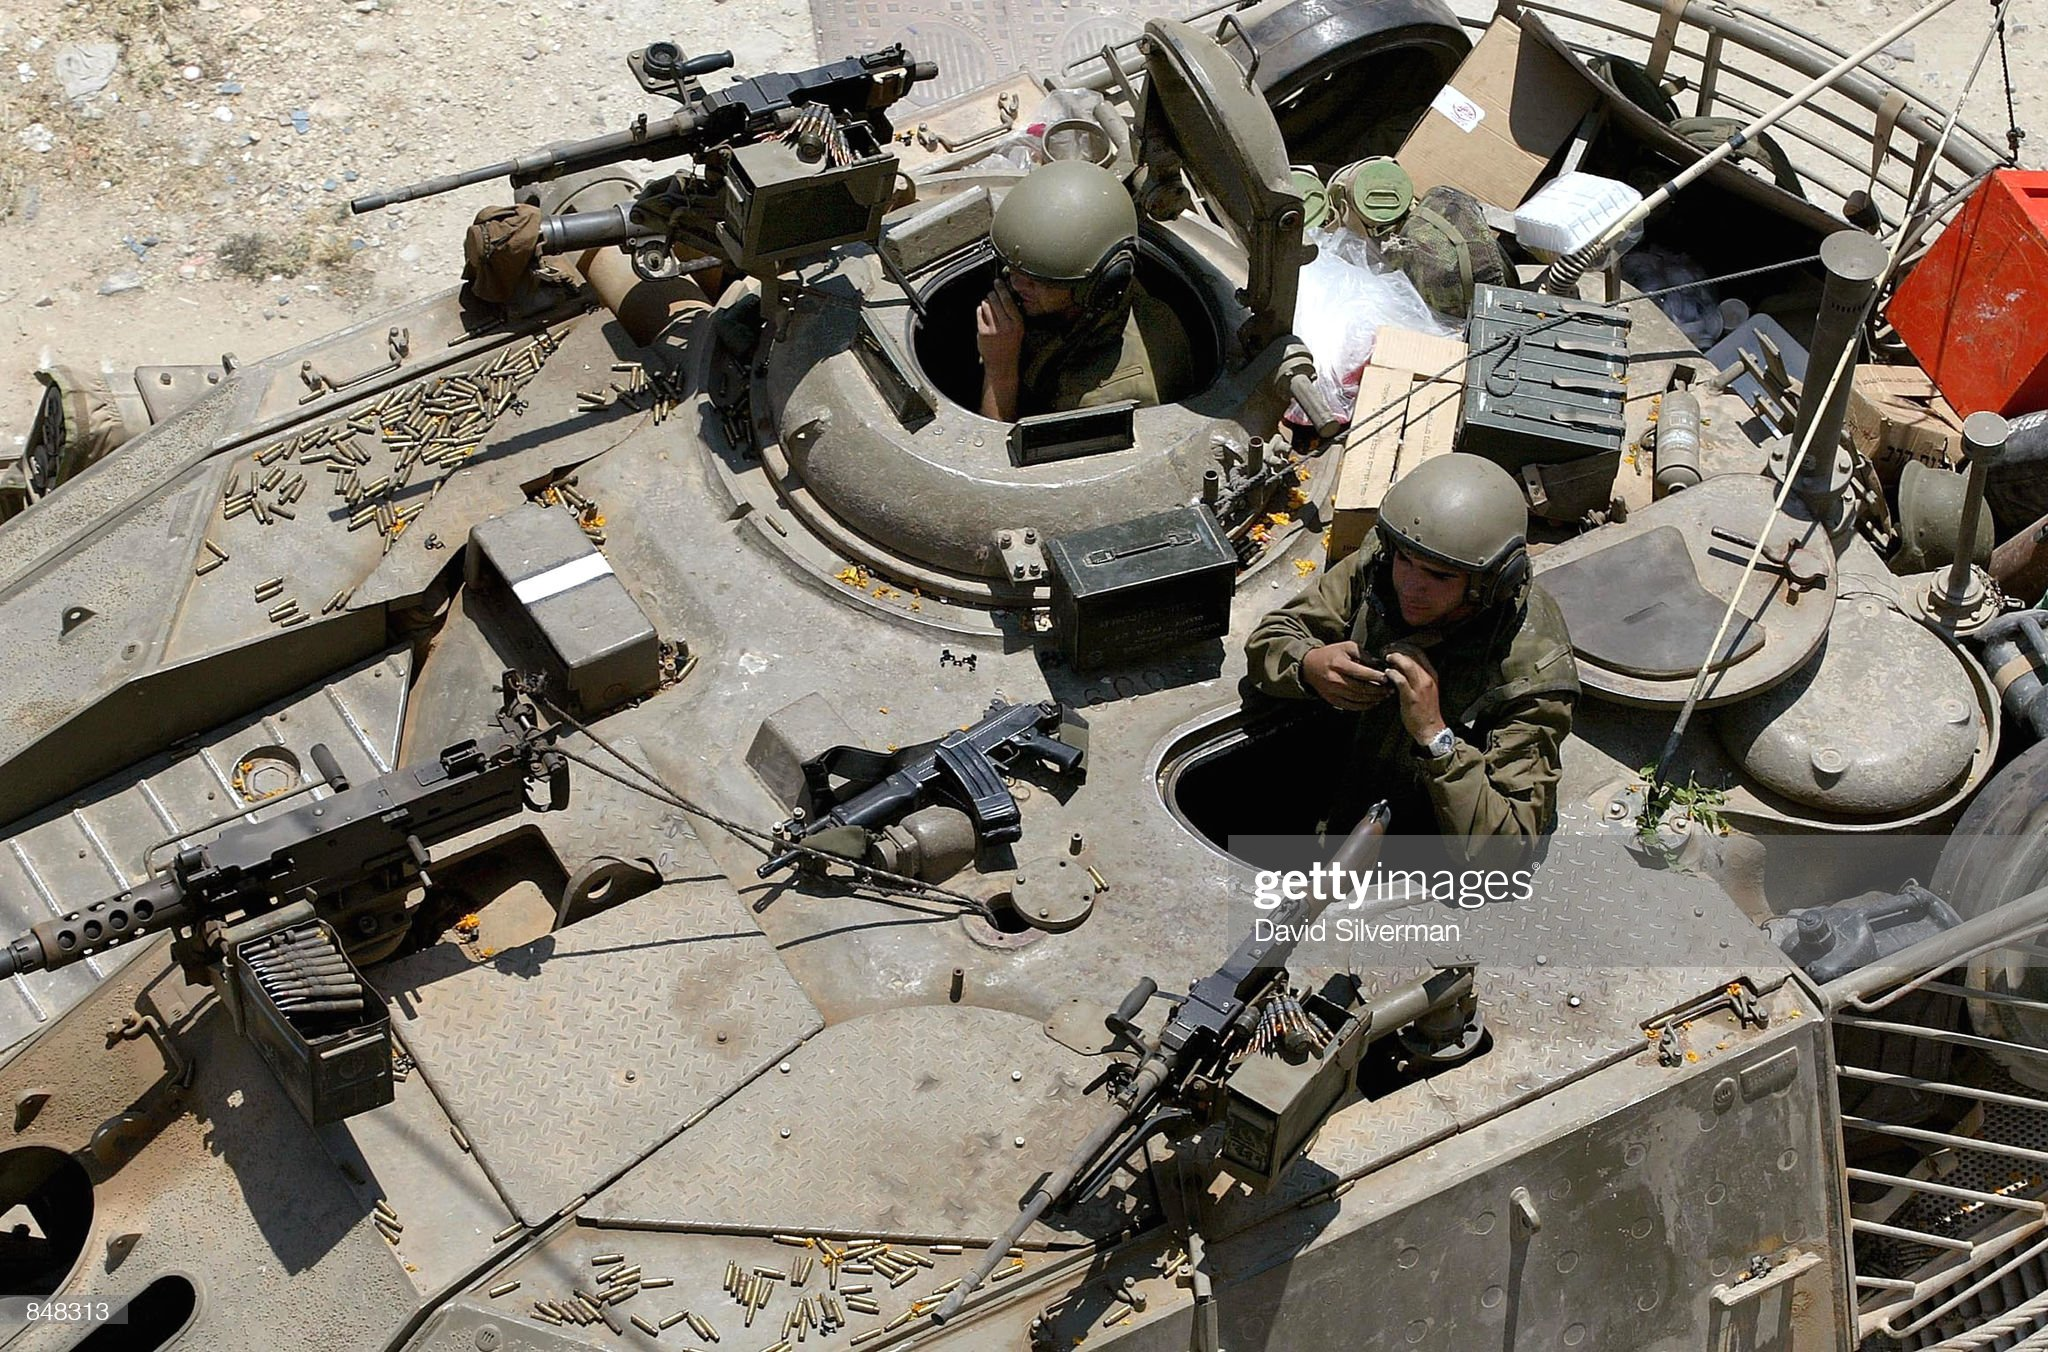 https://media.gettyimages.com/photos/spent-bullet-casings-litter-the-turret-of-an-israeli-tank-as-the-tank-picture-id848313?s=2048x2048